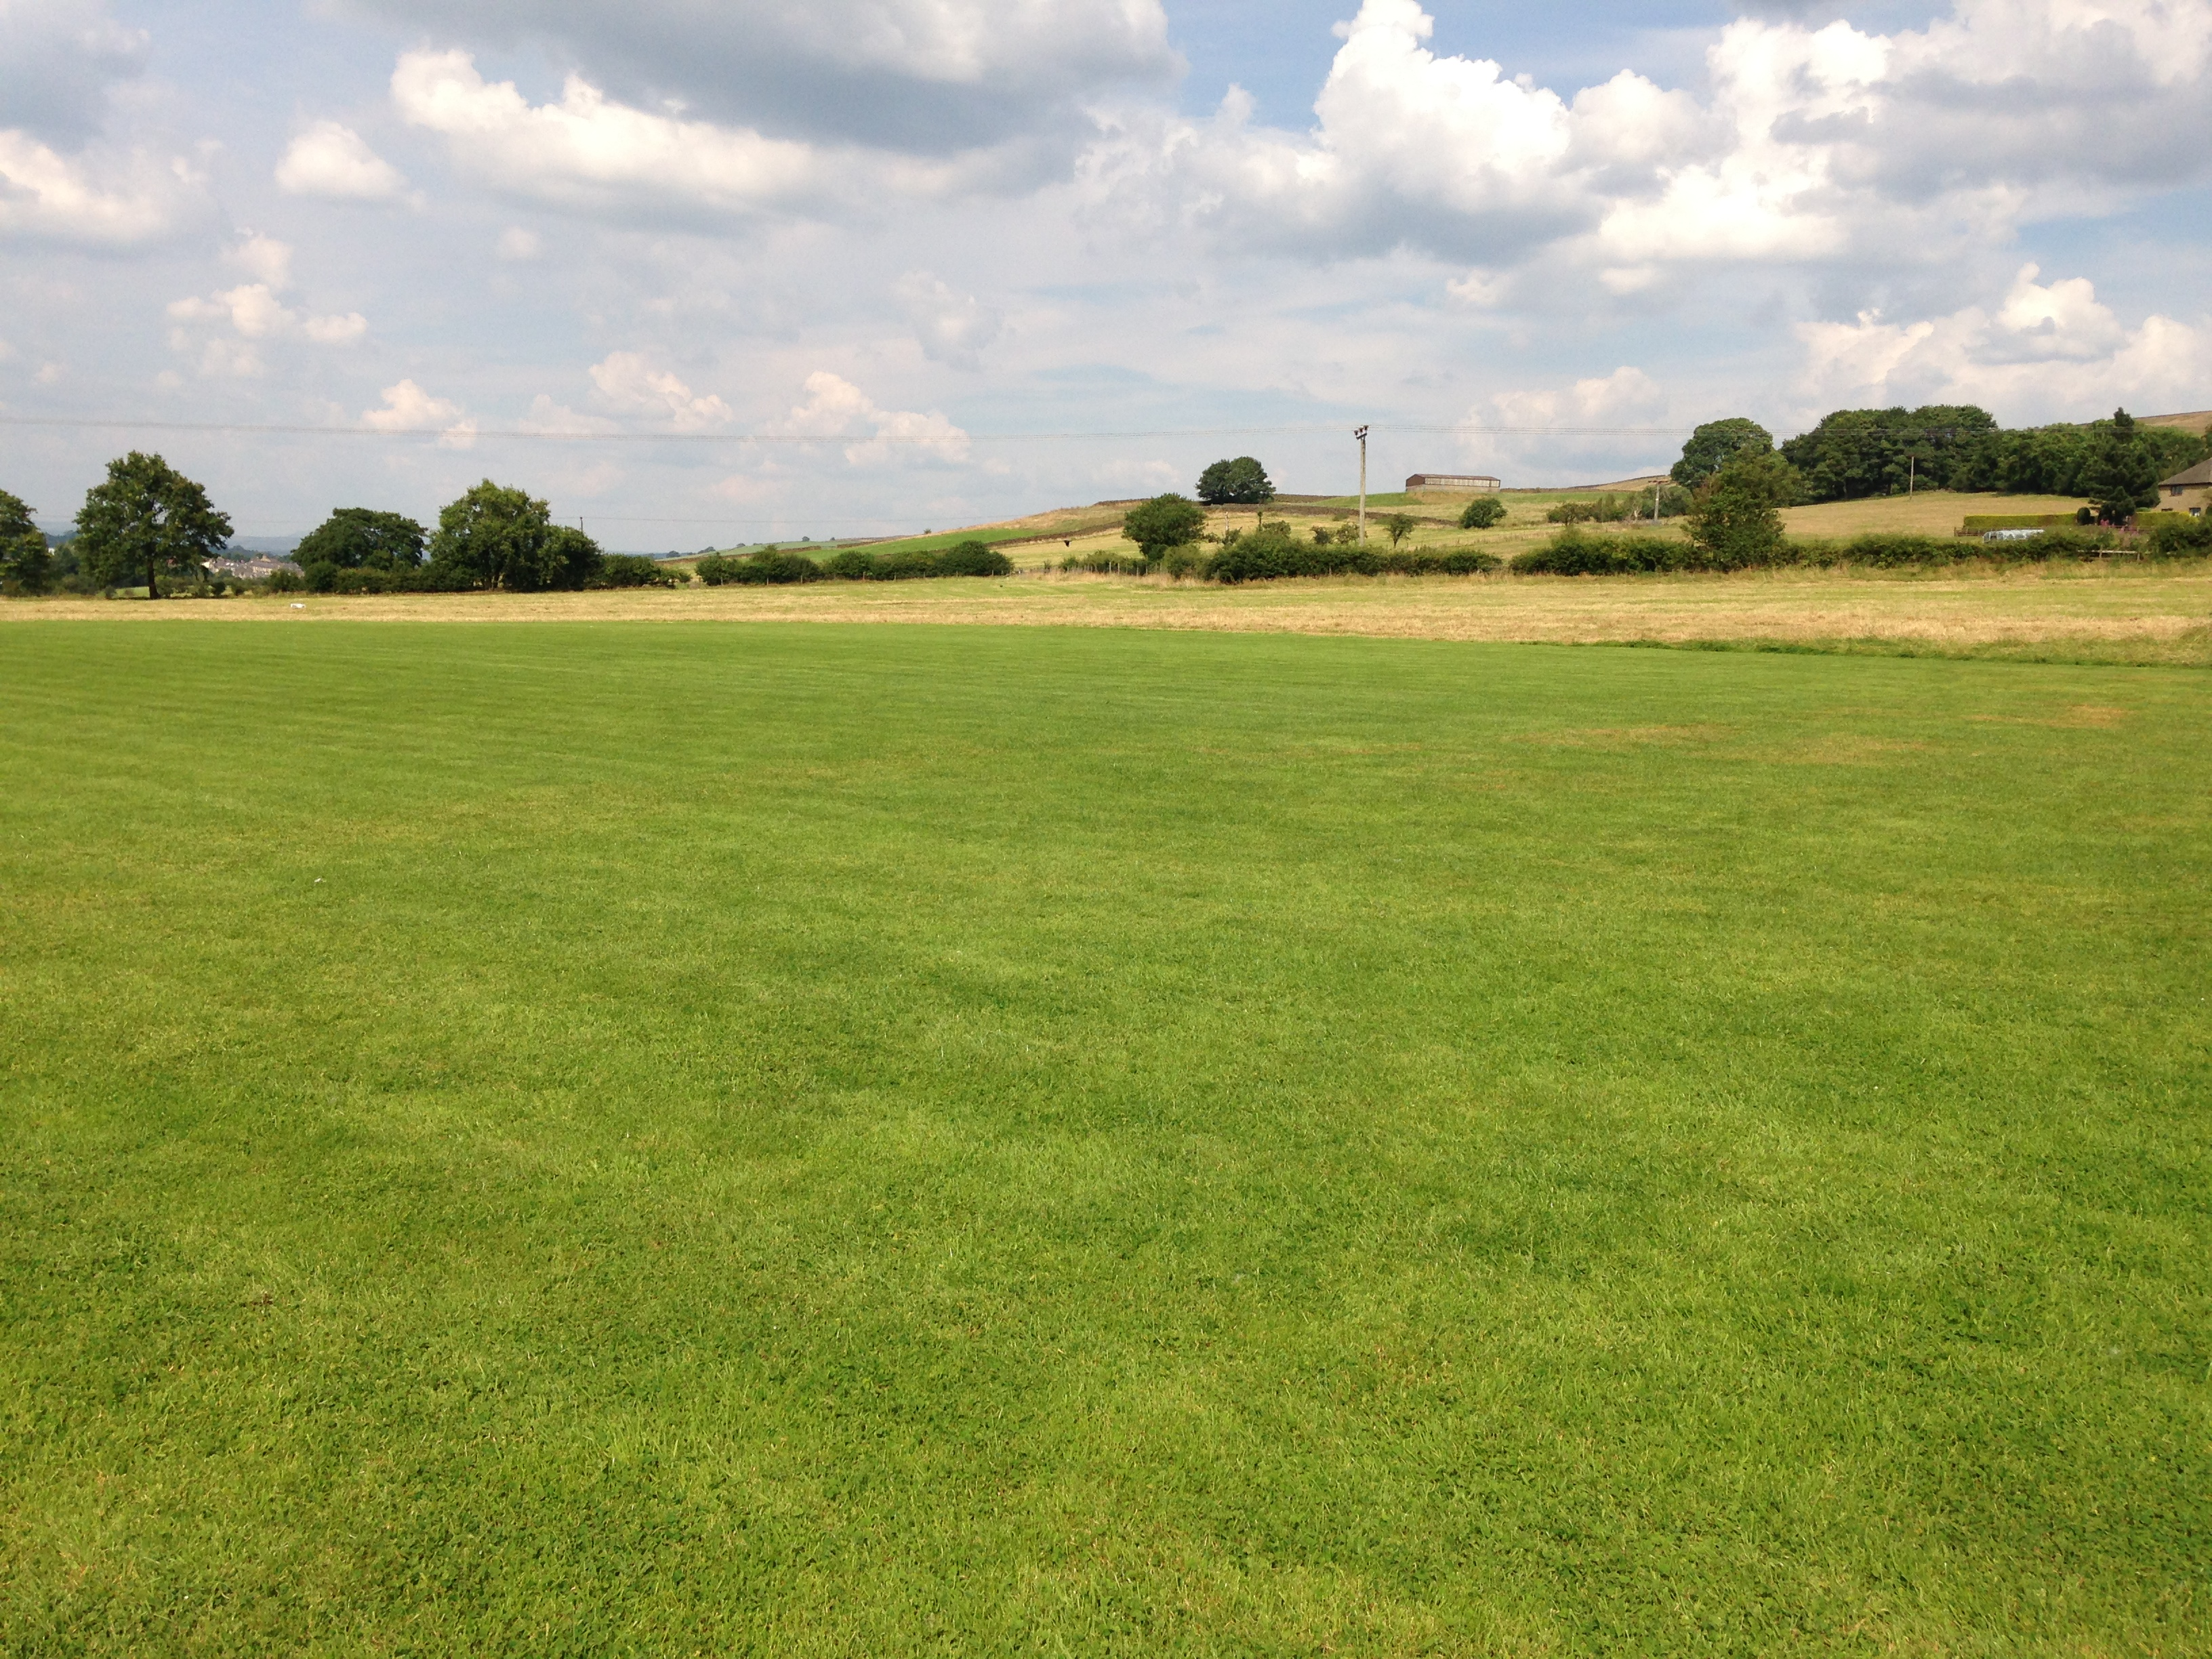 NEW RURAL VENUE FOR WEDDINGS Fabulous Flat Field For Hire